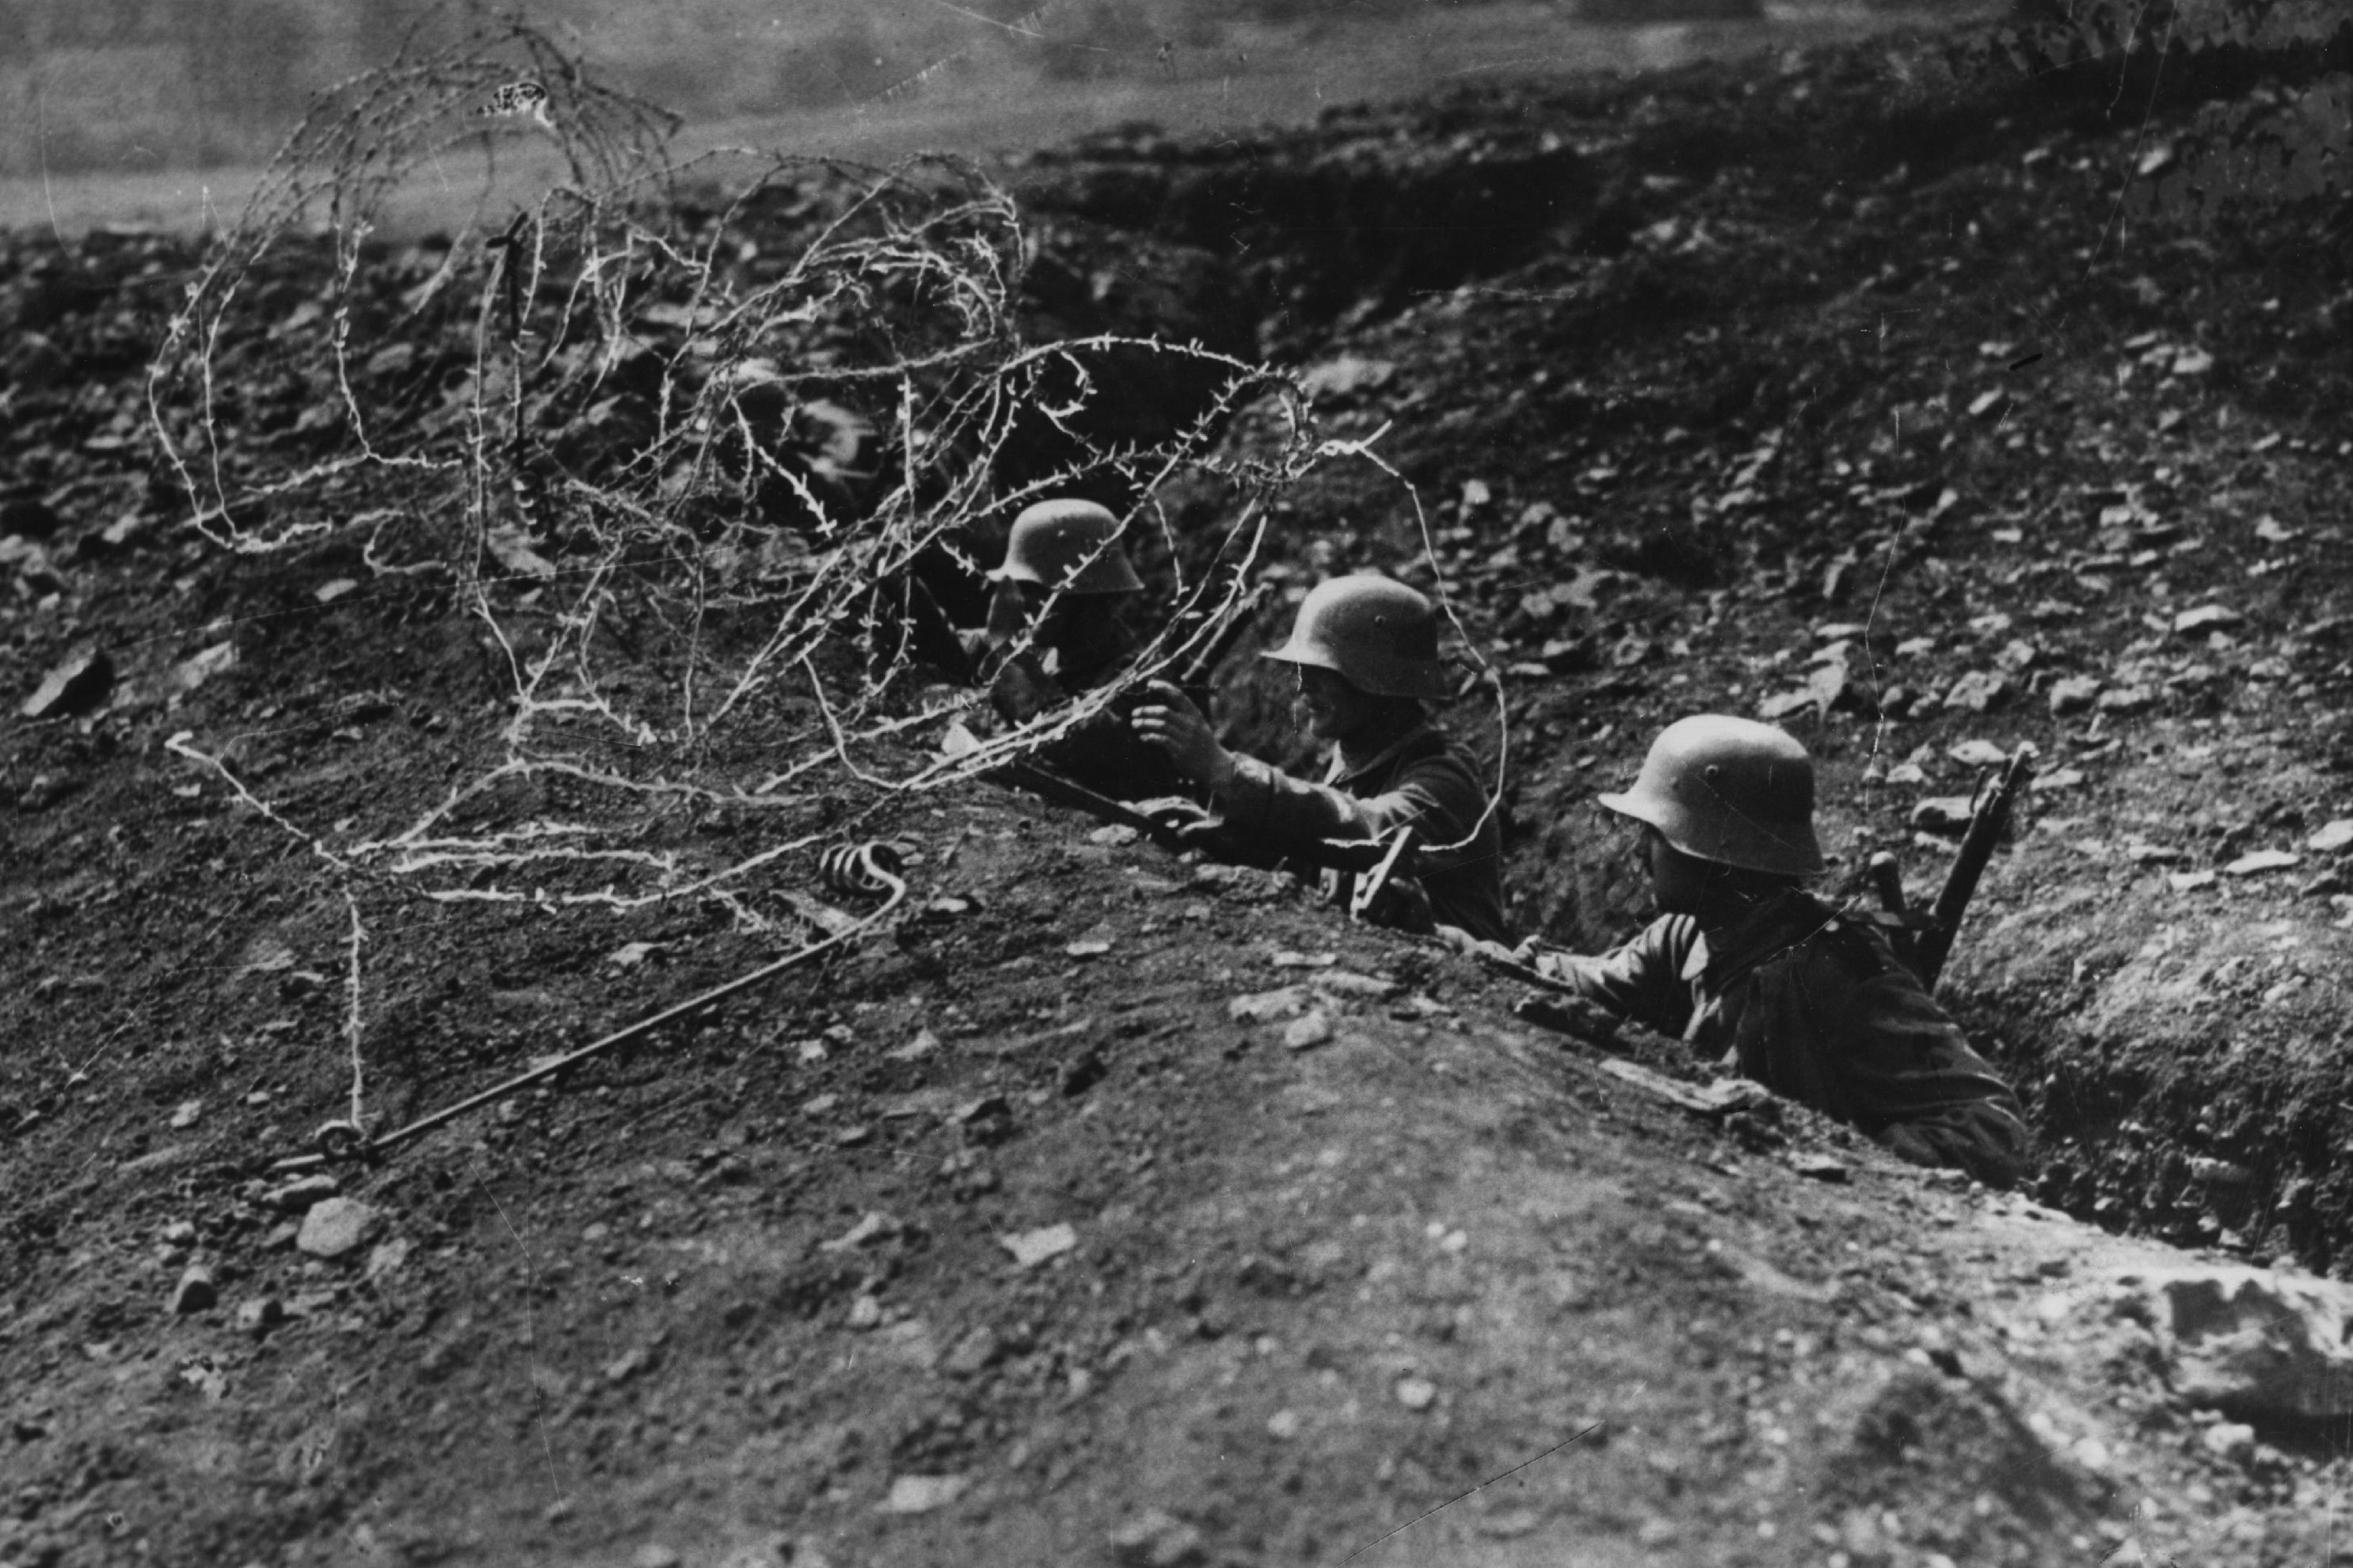 German soldiers during wwi in the trenches